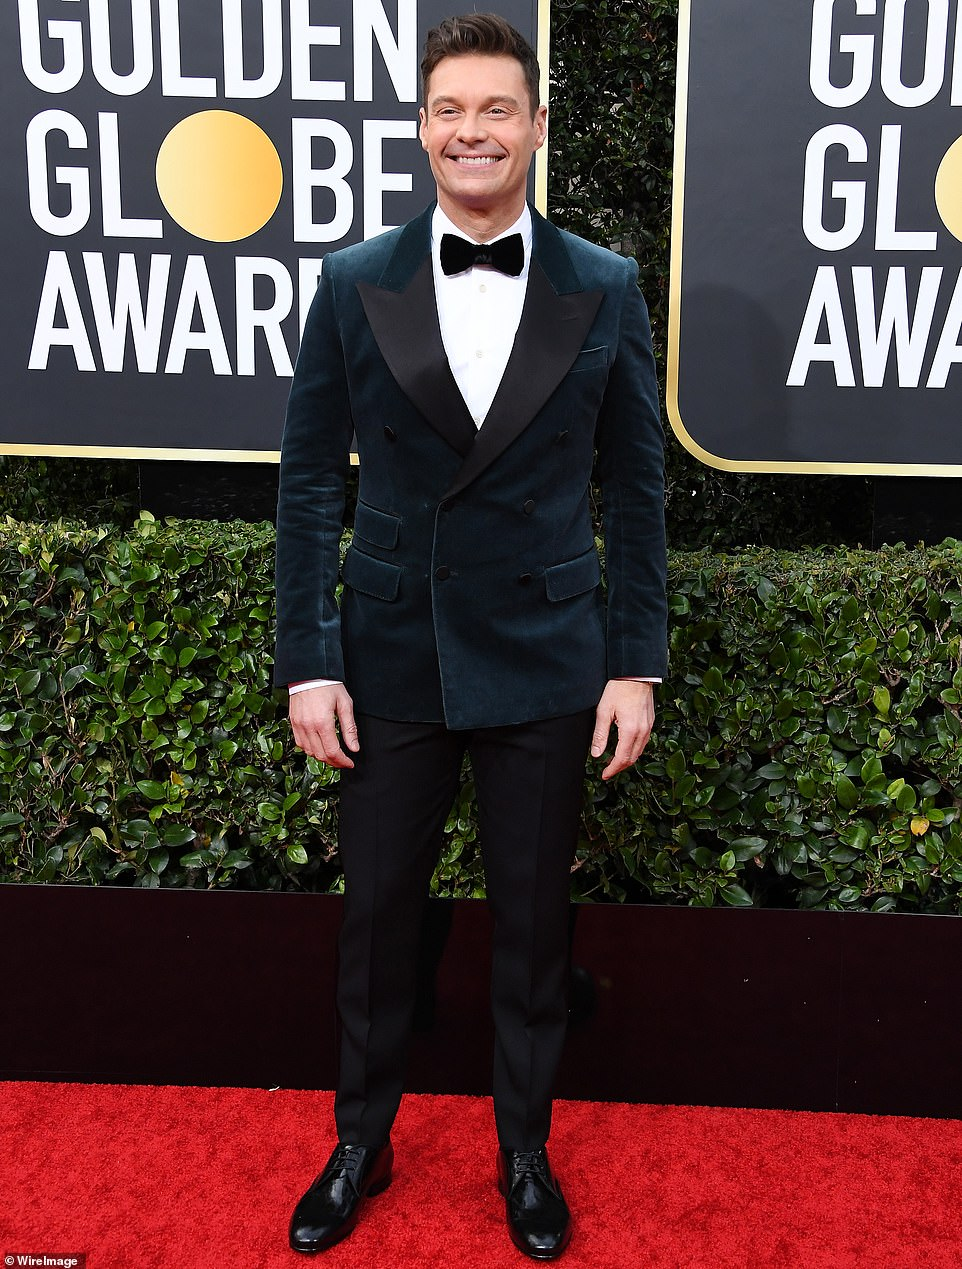 The man with a big house to sell: The entertainment mogul is seen here at the 77th Annual Golden Globe Awards at The Beverly Hilton Hotel in January 2020